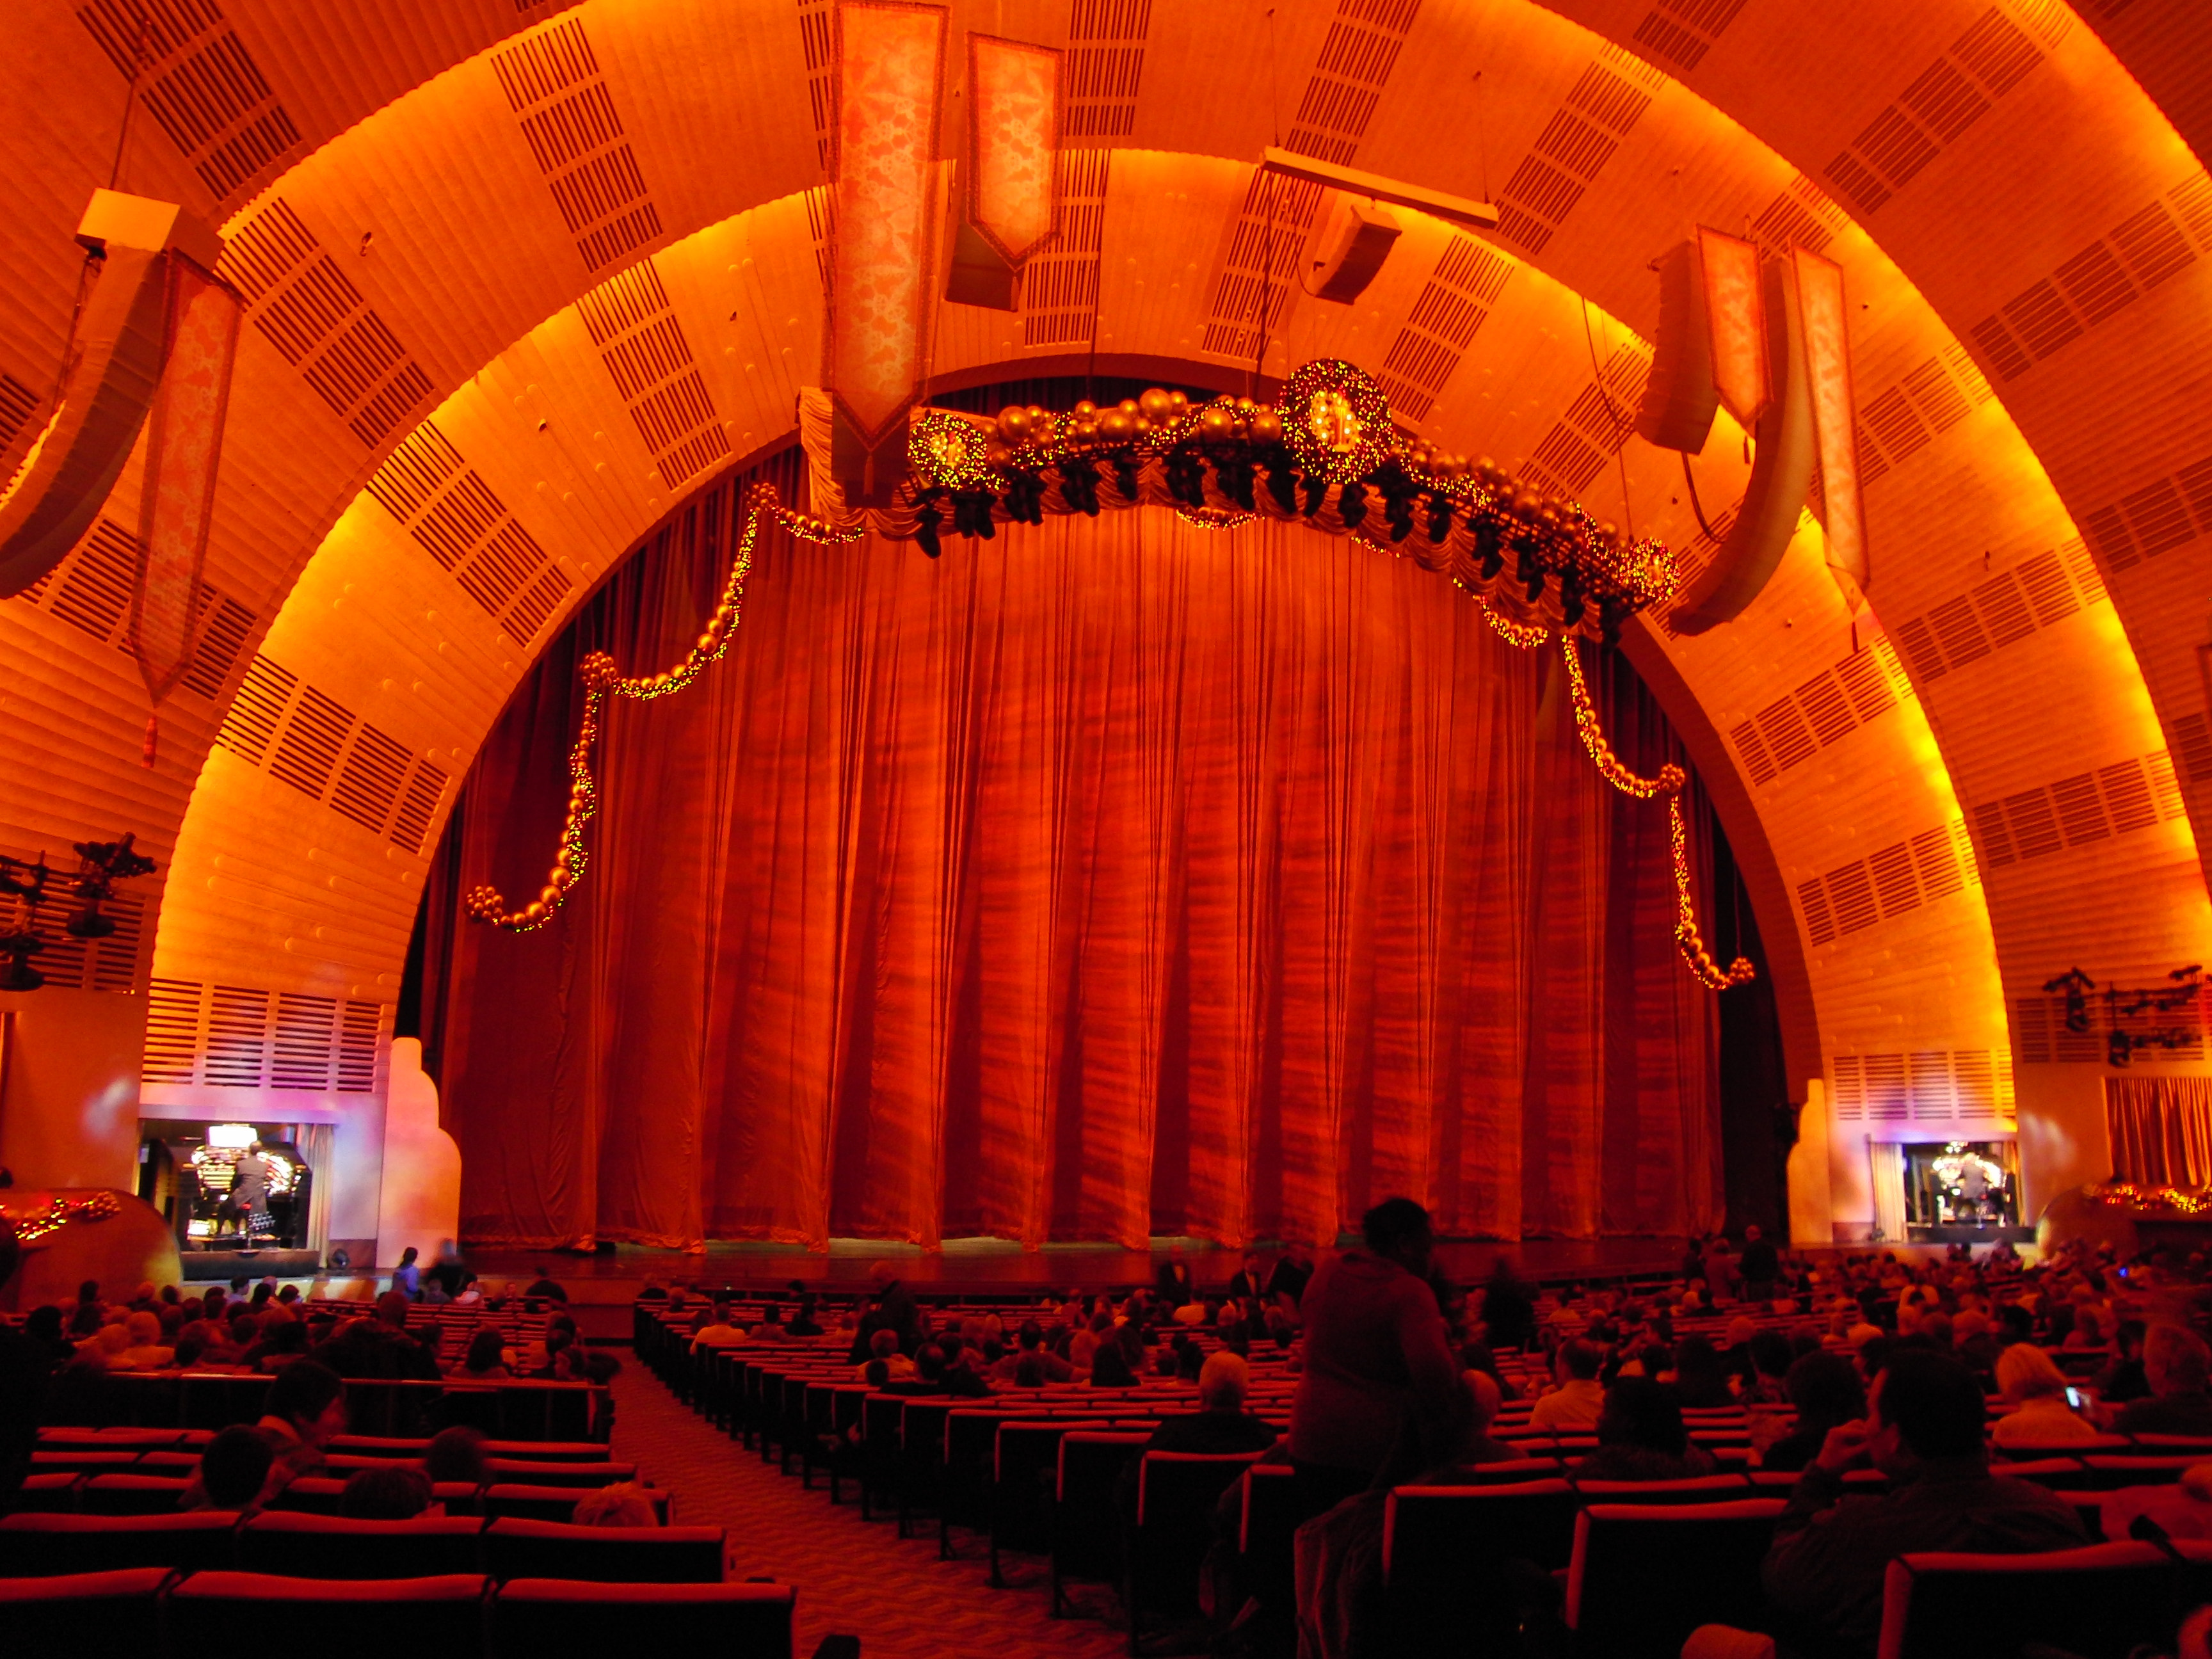 Watch likewise intl ticketseating   maps 450w 1782 Beacon Theatre Center Stage furthermore Radio City Music Hall Seating Chart also Radio City Music Hall Seating First Mezzanine likewise Bass Concert Hall Seating Chart. on orchestra seating at radio city music hall